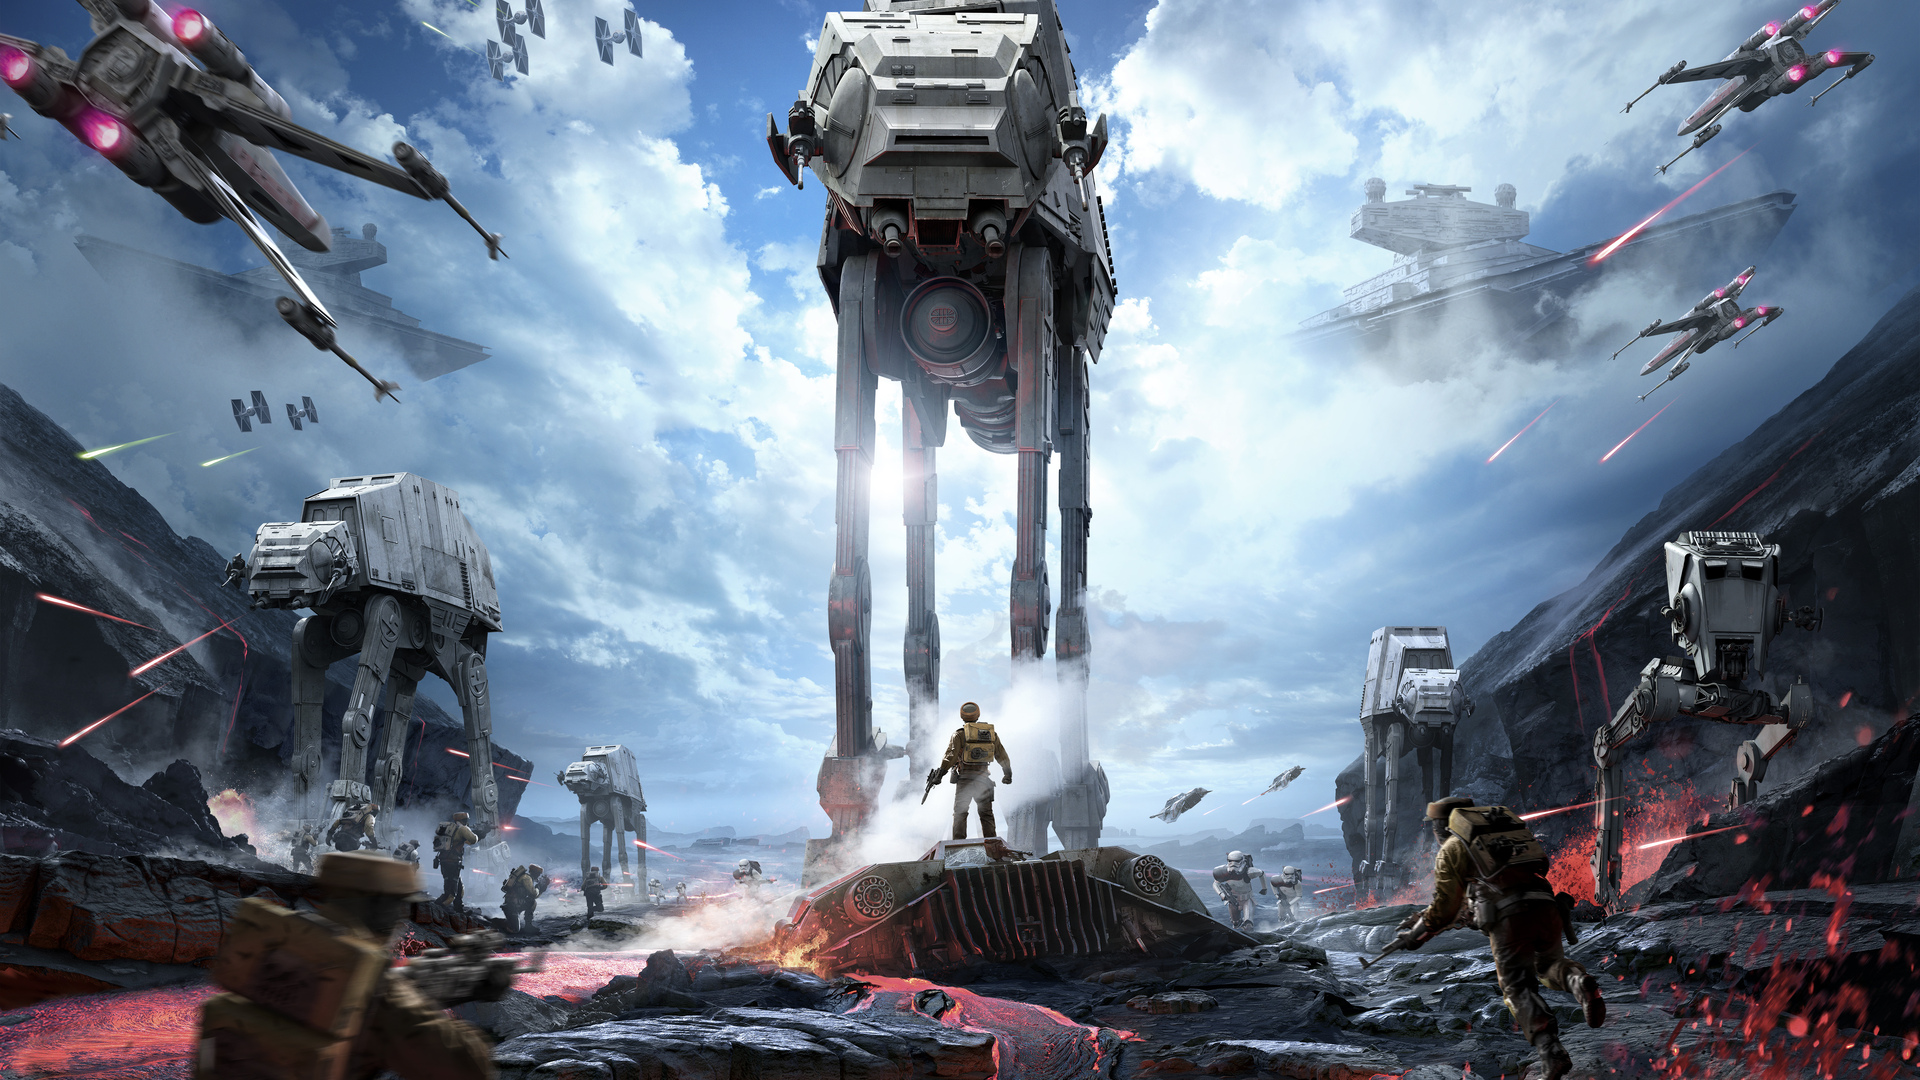 1920x1080 Star Wars Battlefront 2 5k Laptop Full HD 1080P